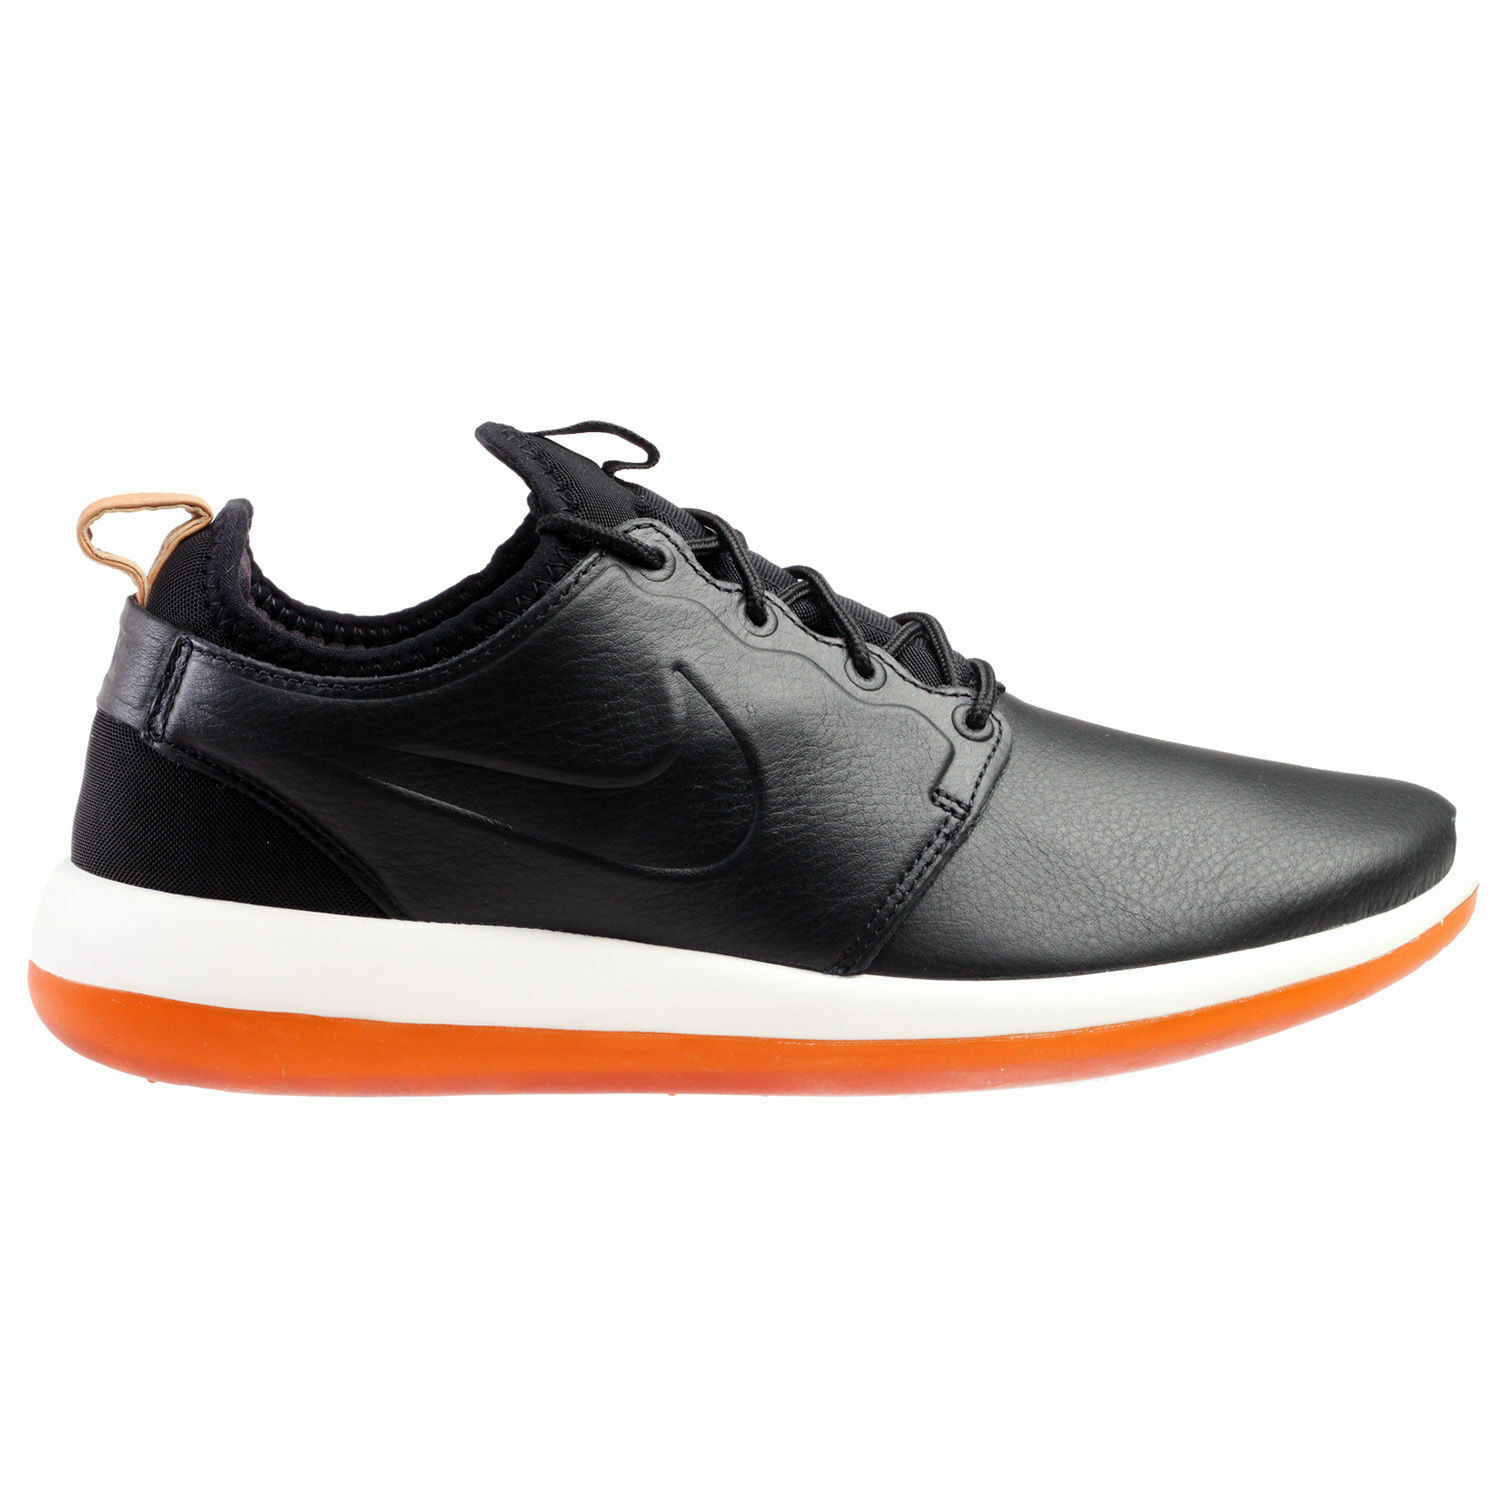 Nike Roshe Two Leather Premium Mens Size 7 shoes Black White Gum 881987-001 NEW